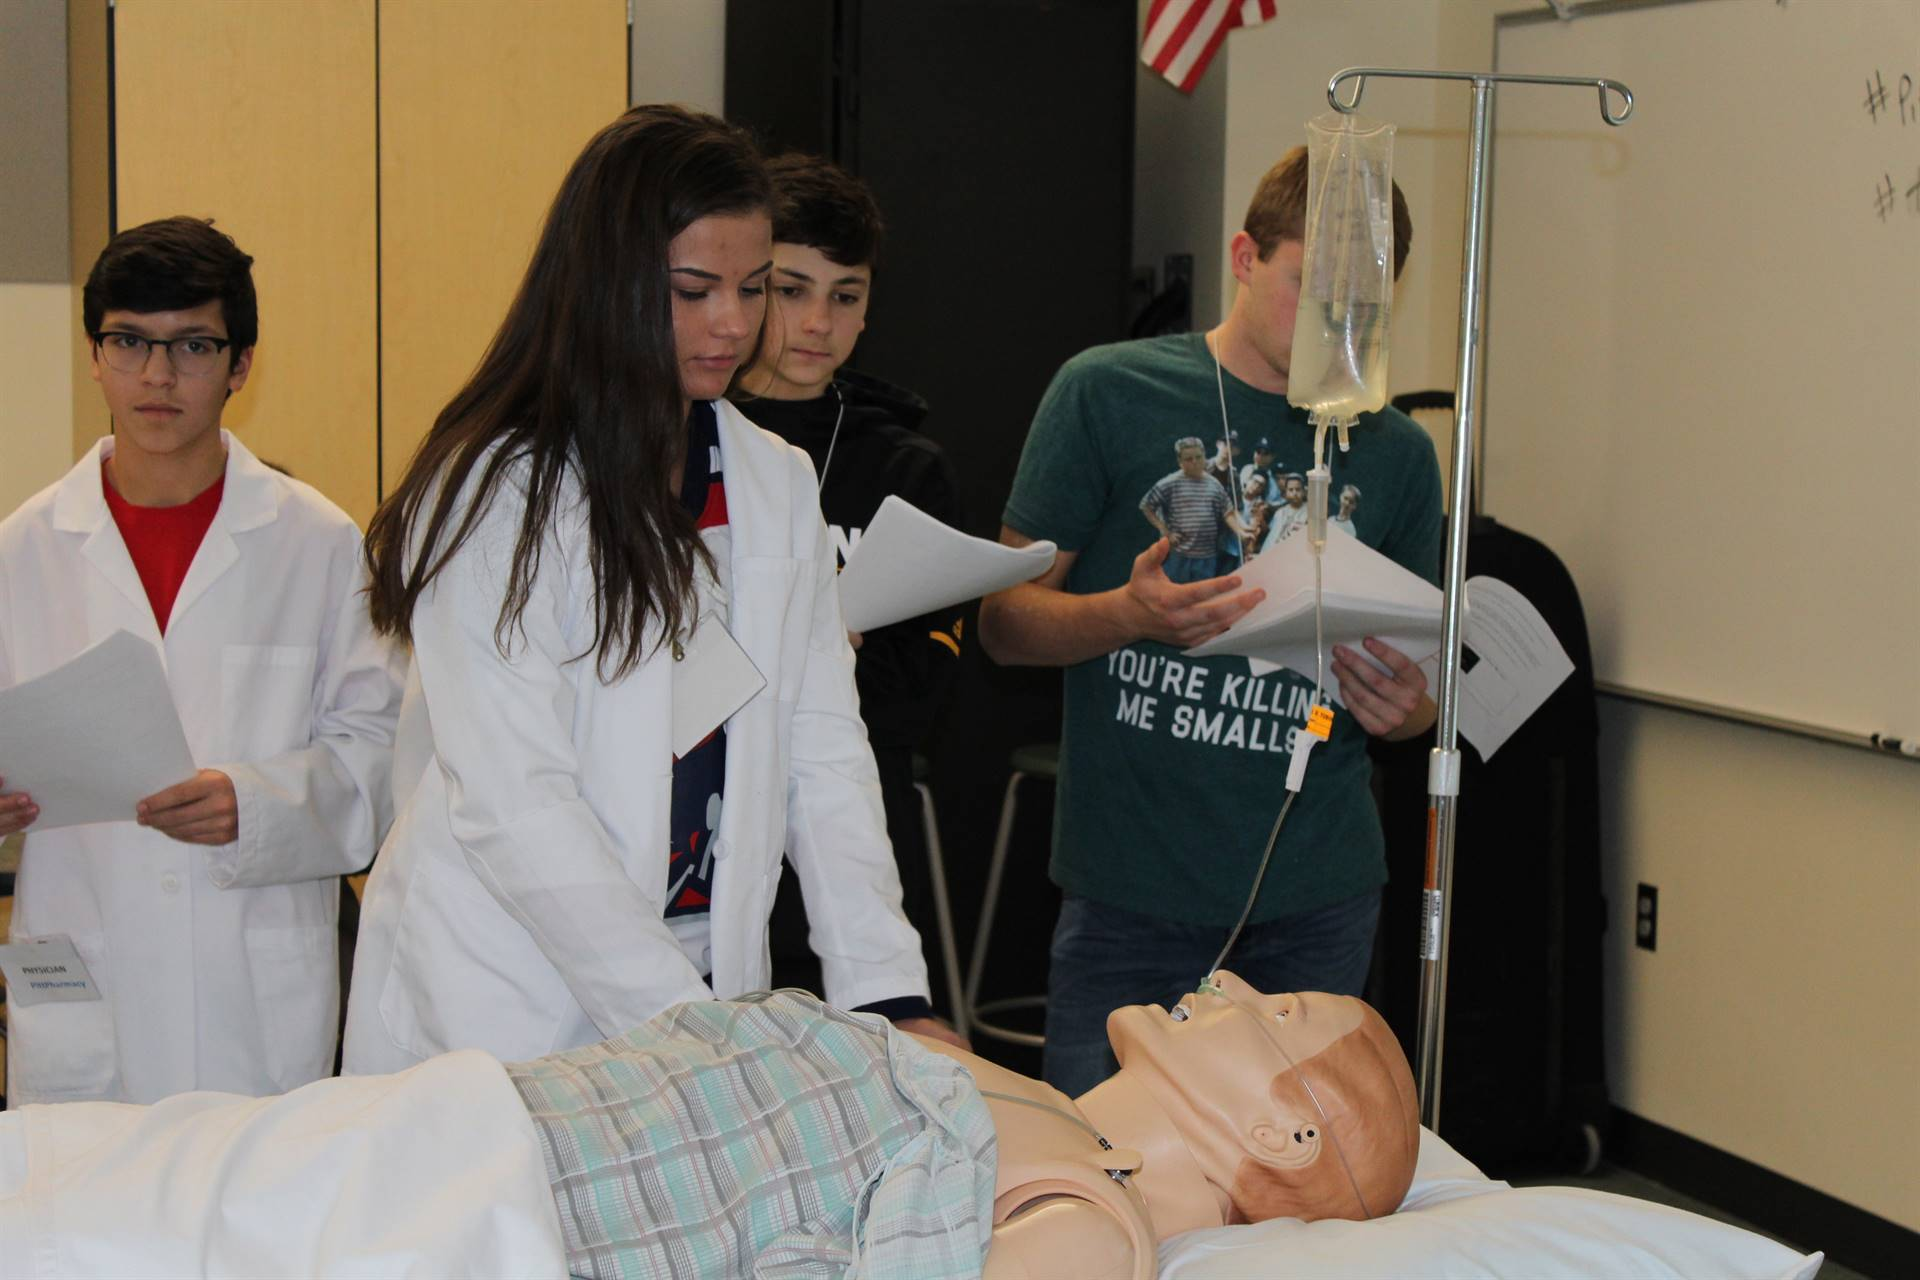 Student administering medication to the Sim Man